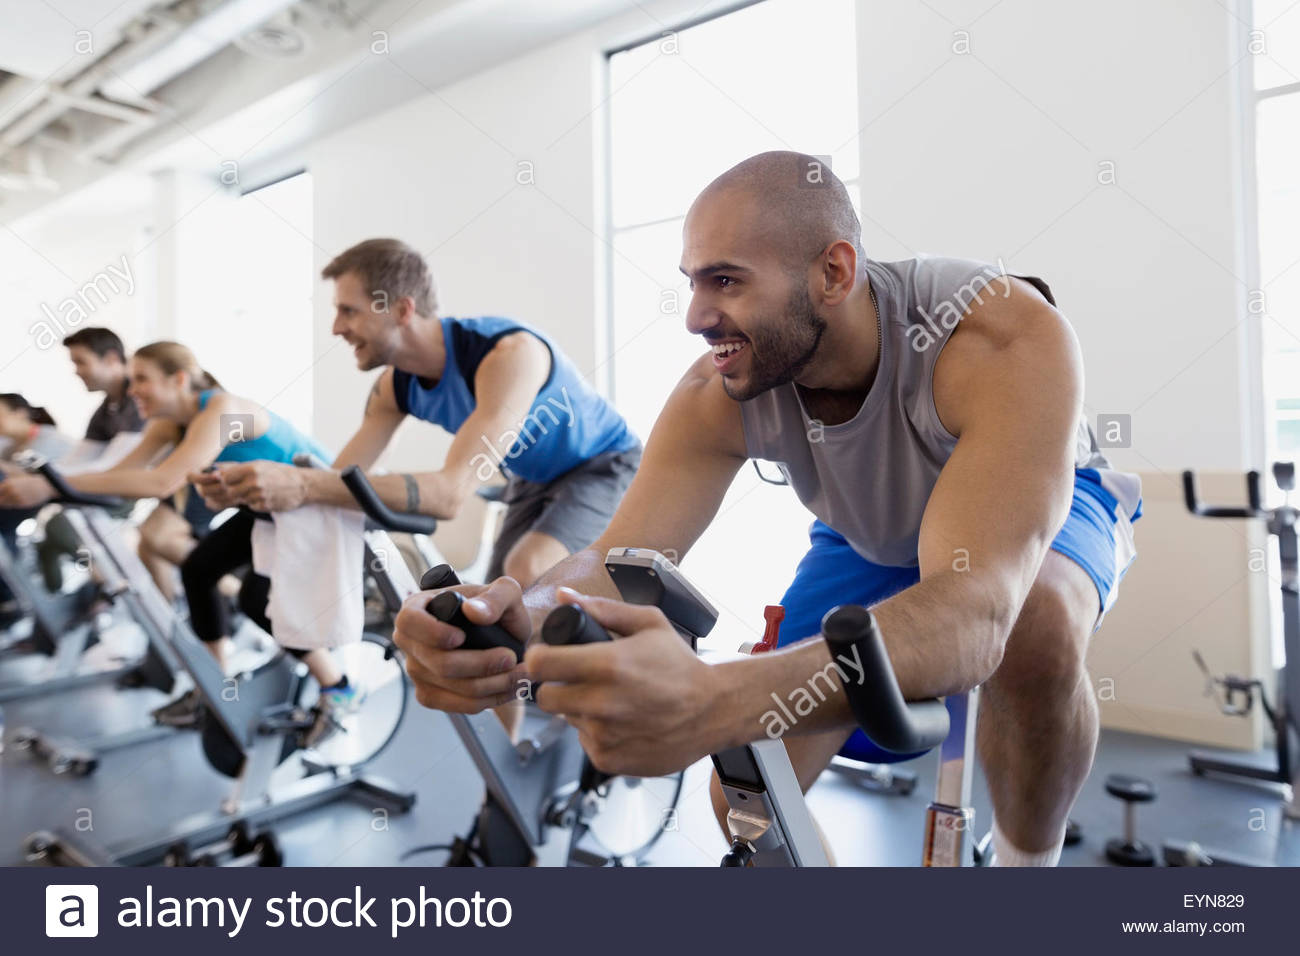 Smiling man enjoying spin class stationary bike gym - Stock Image